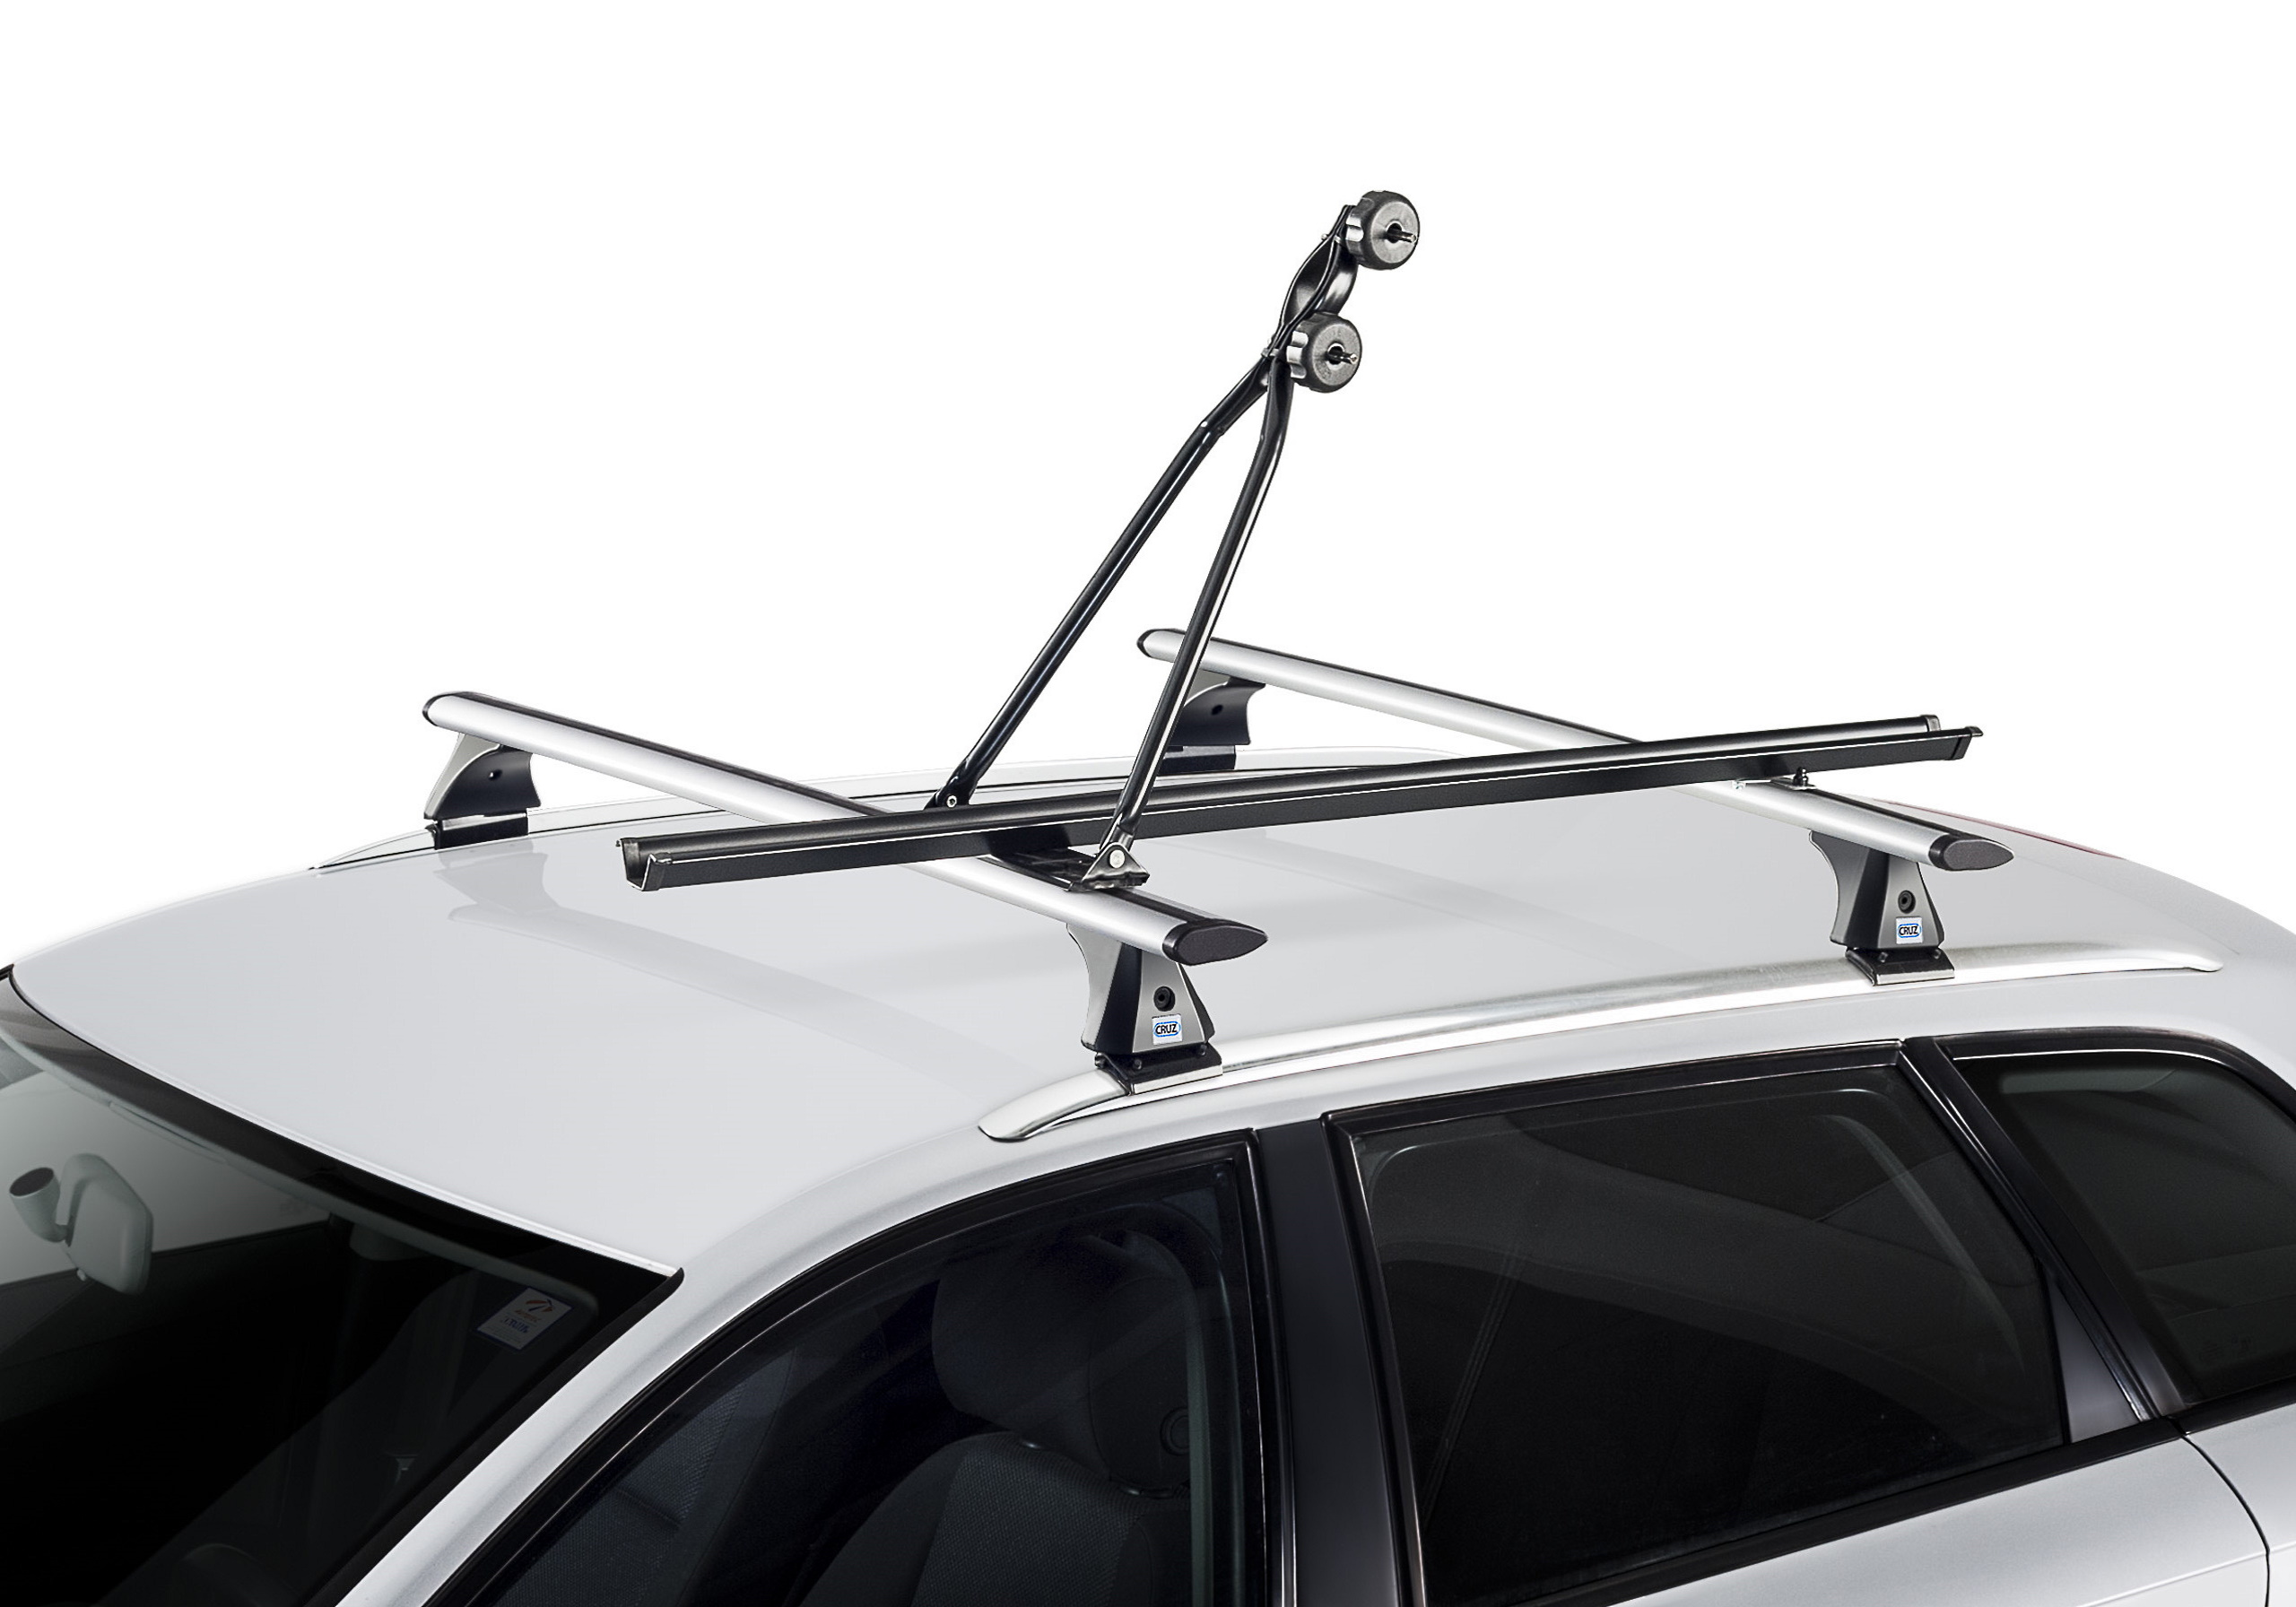 4 x black CRUZ Bici-racks with roof bars